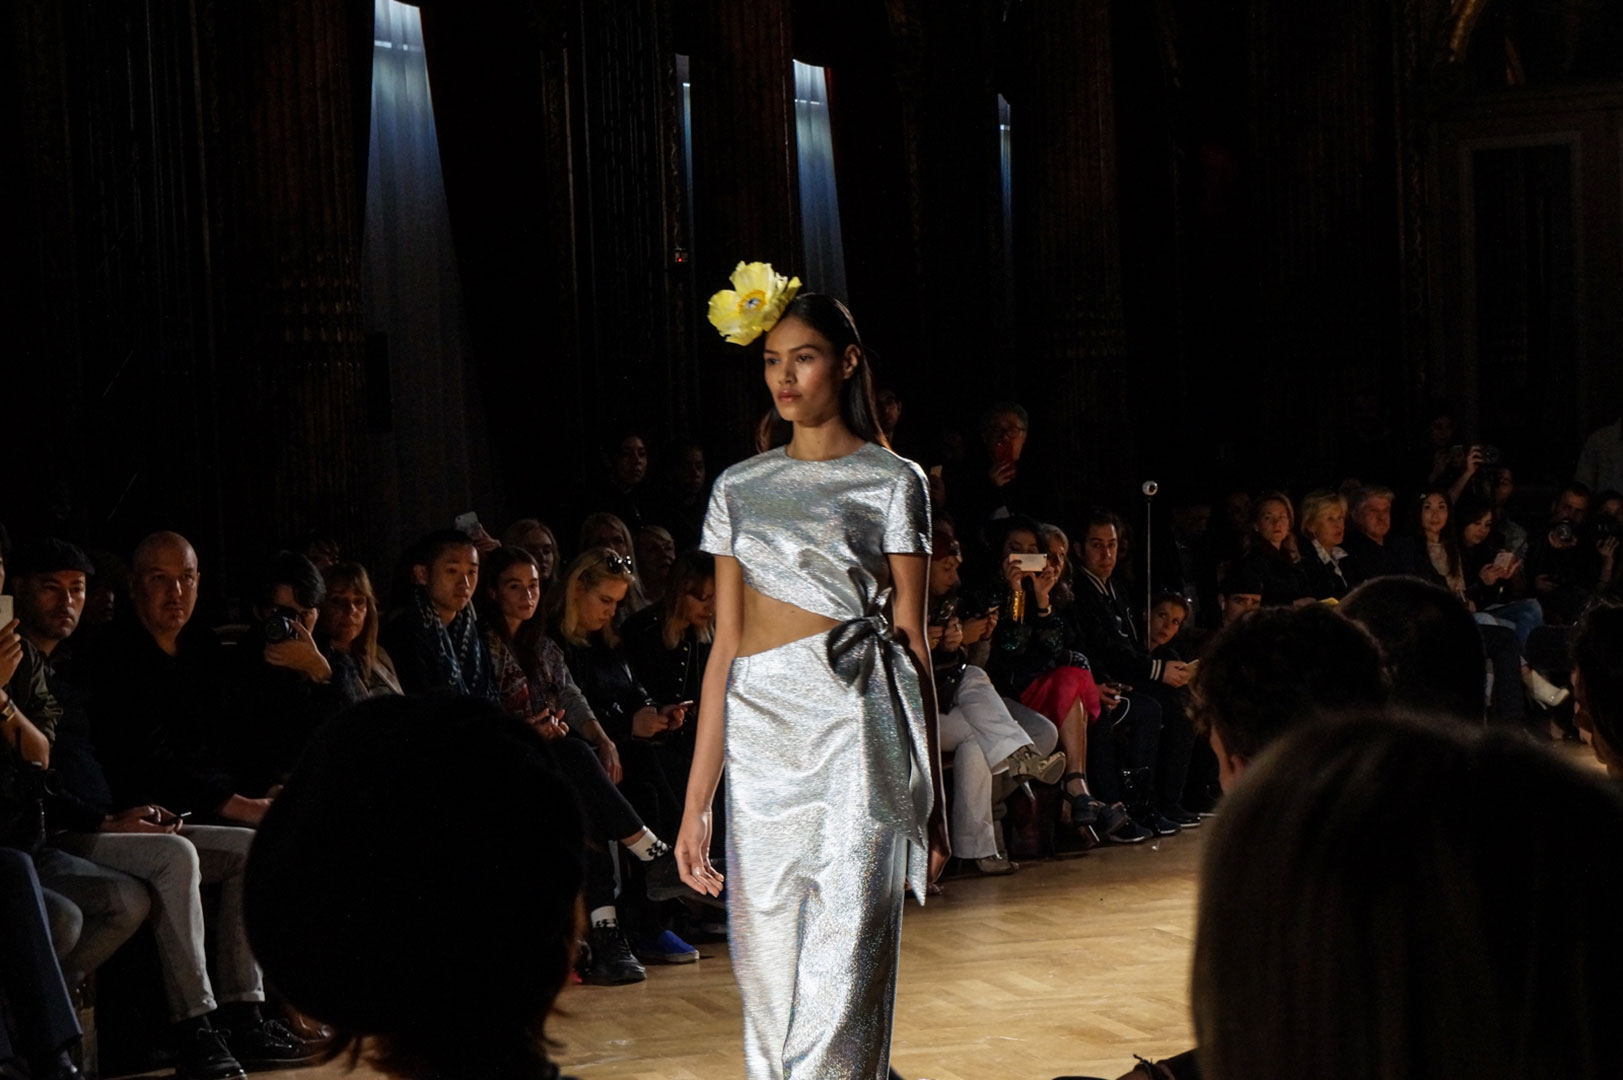 my-paris-fashion-week-diary-paris-by-polina-paraskevopoulou-all-rights-reserved-40